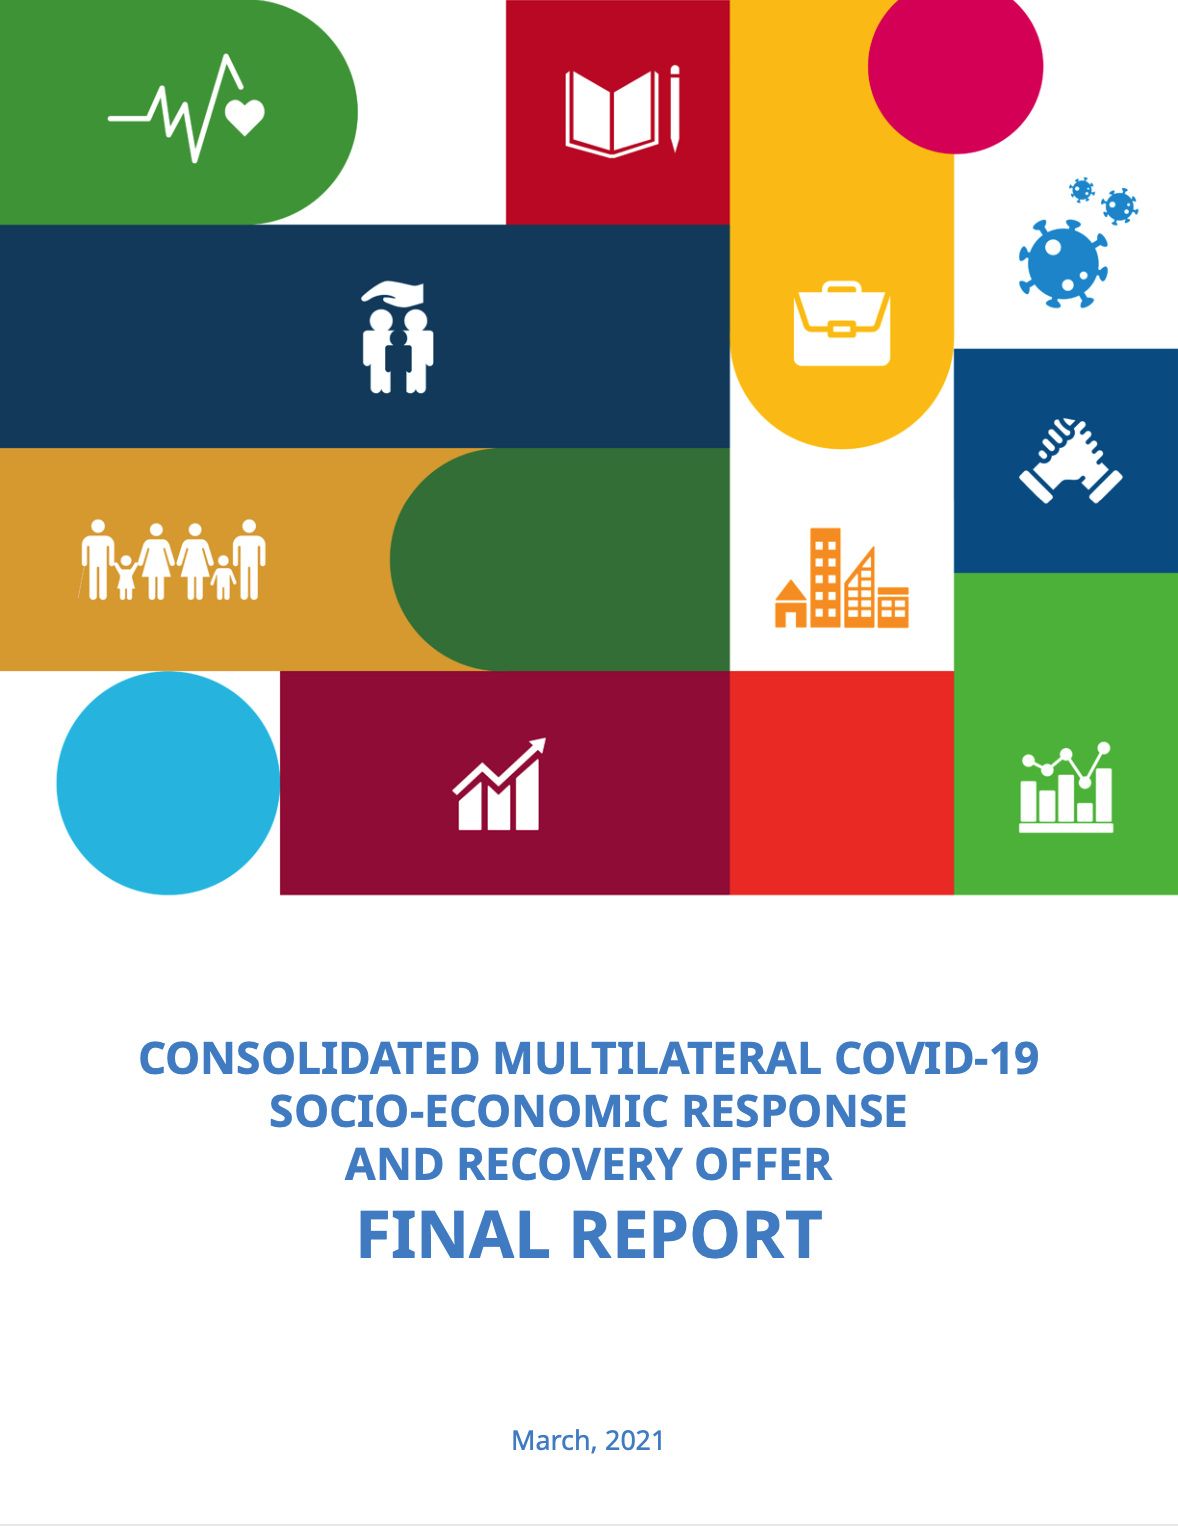 Consolidated Multilateral COVID-19 Socio-Economic Response and Recovery Offer: Final report